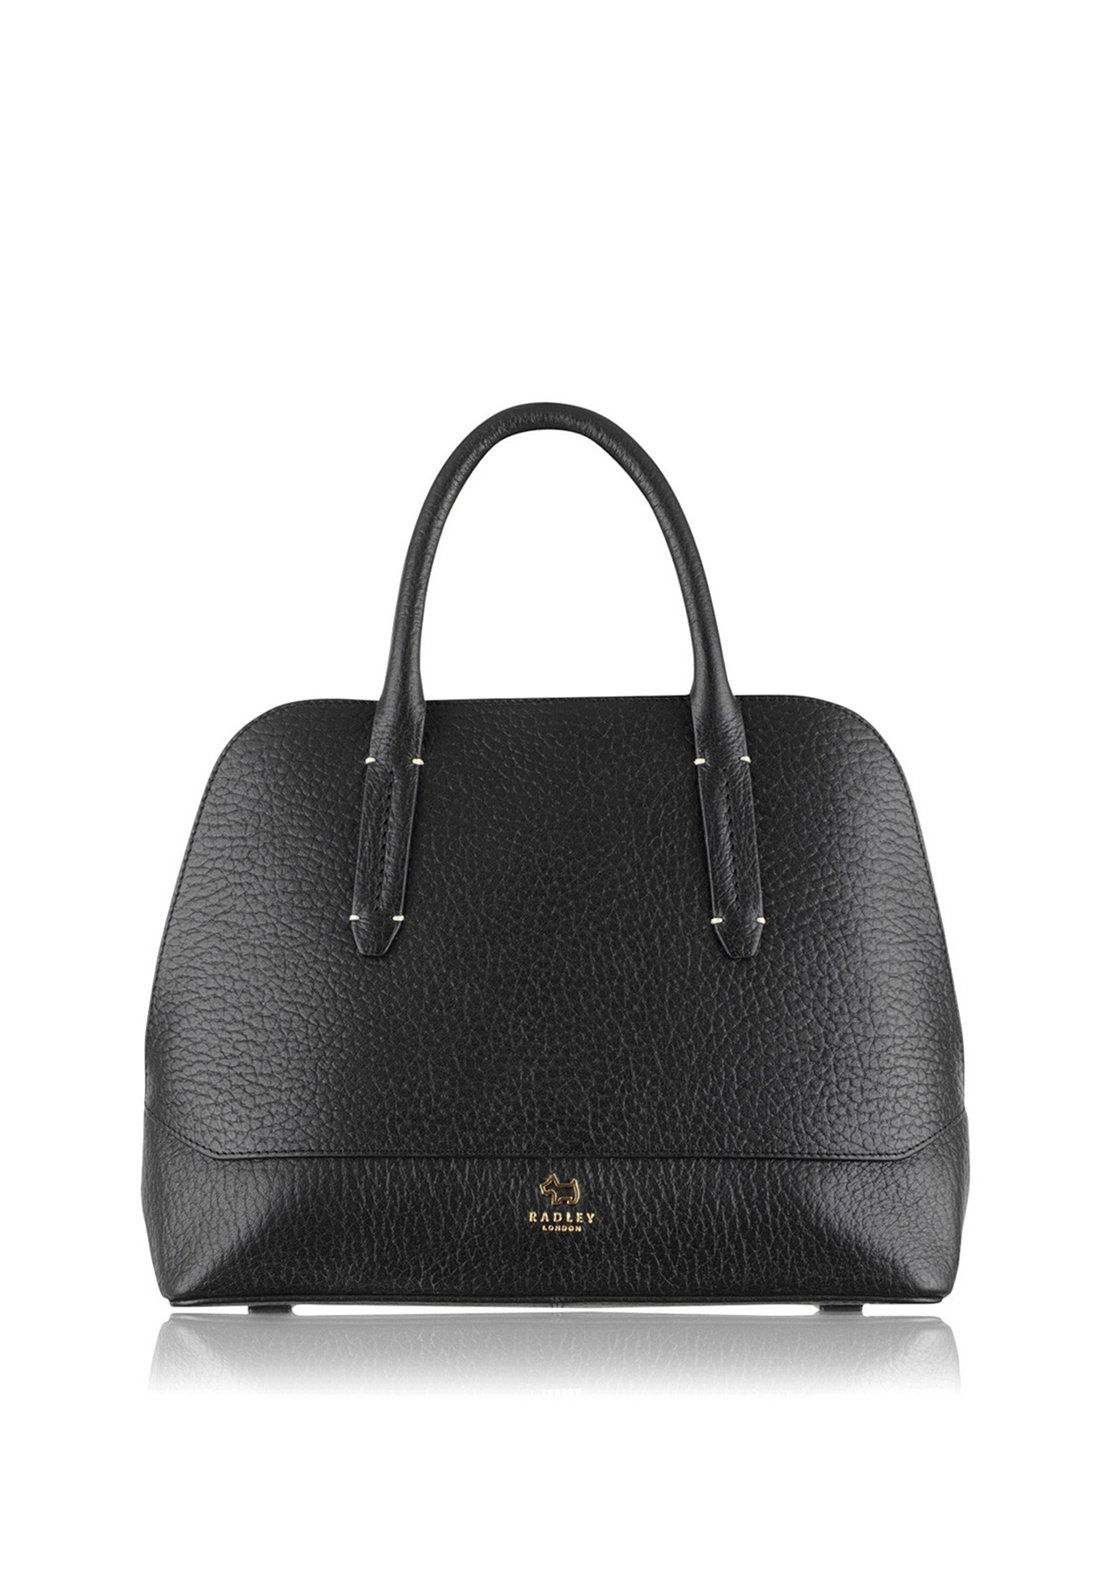 Radley Domed Bag Black Medium